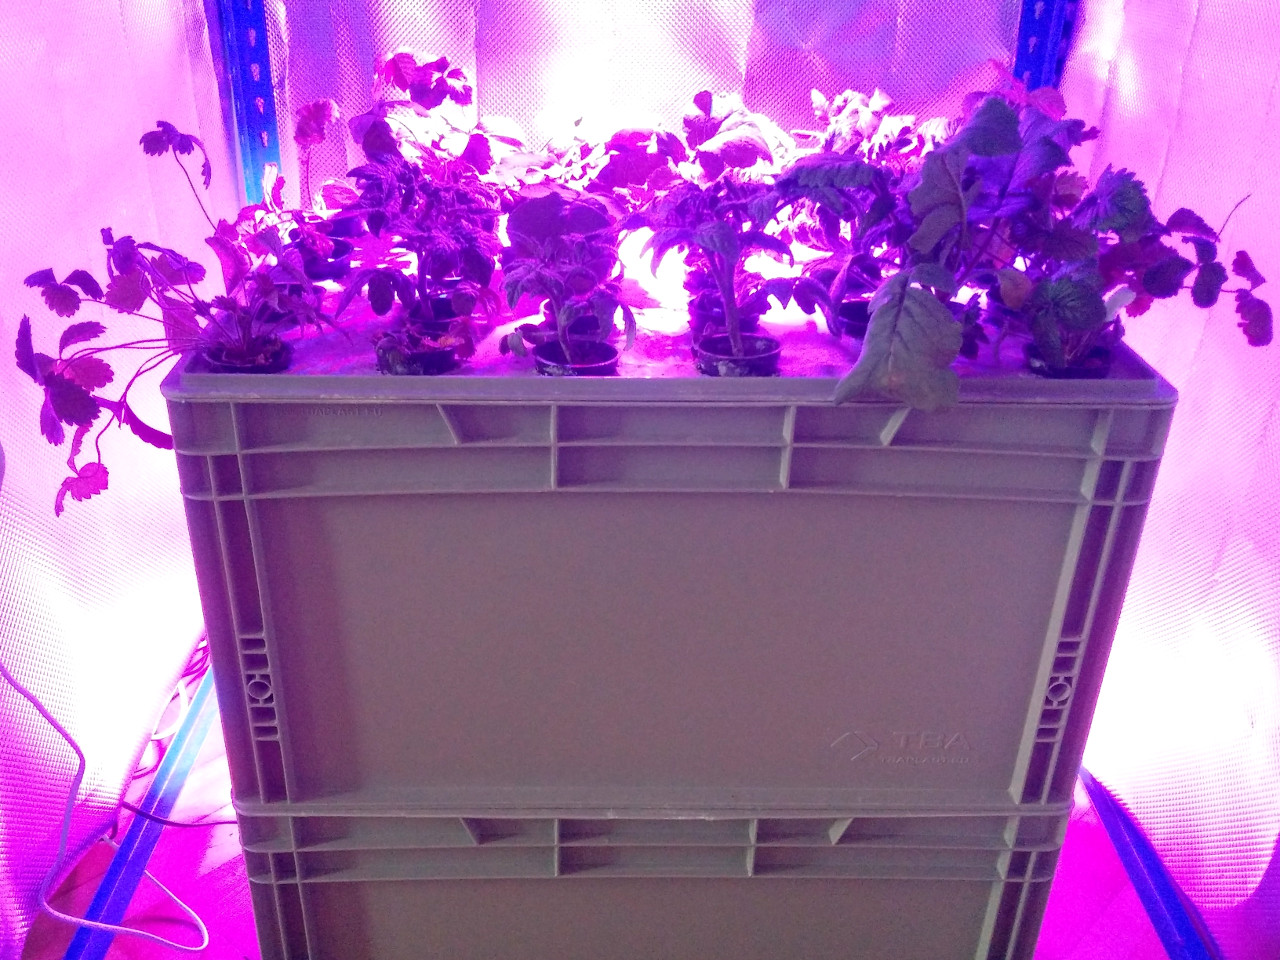 Growing box with lights on